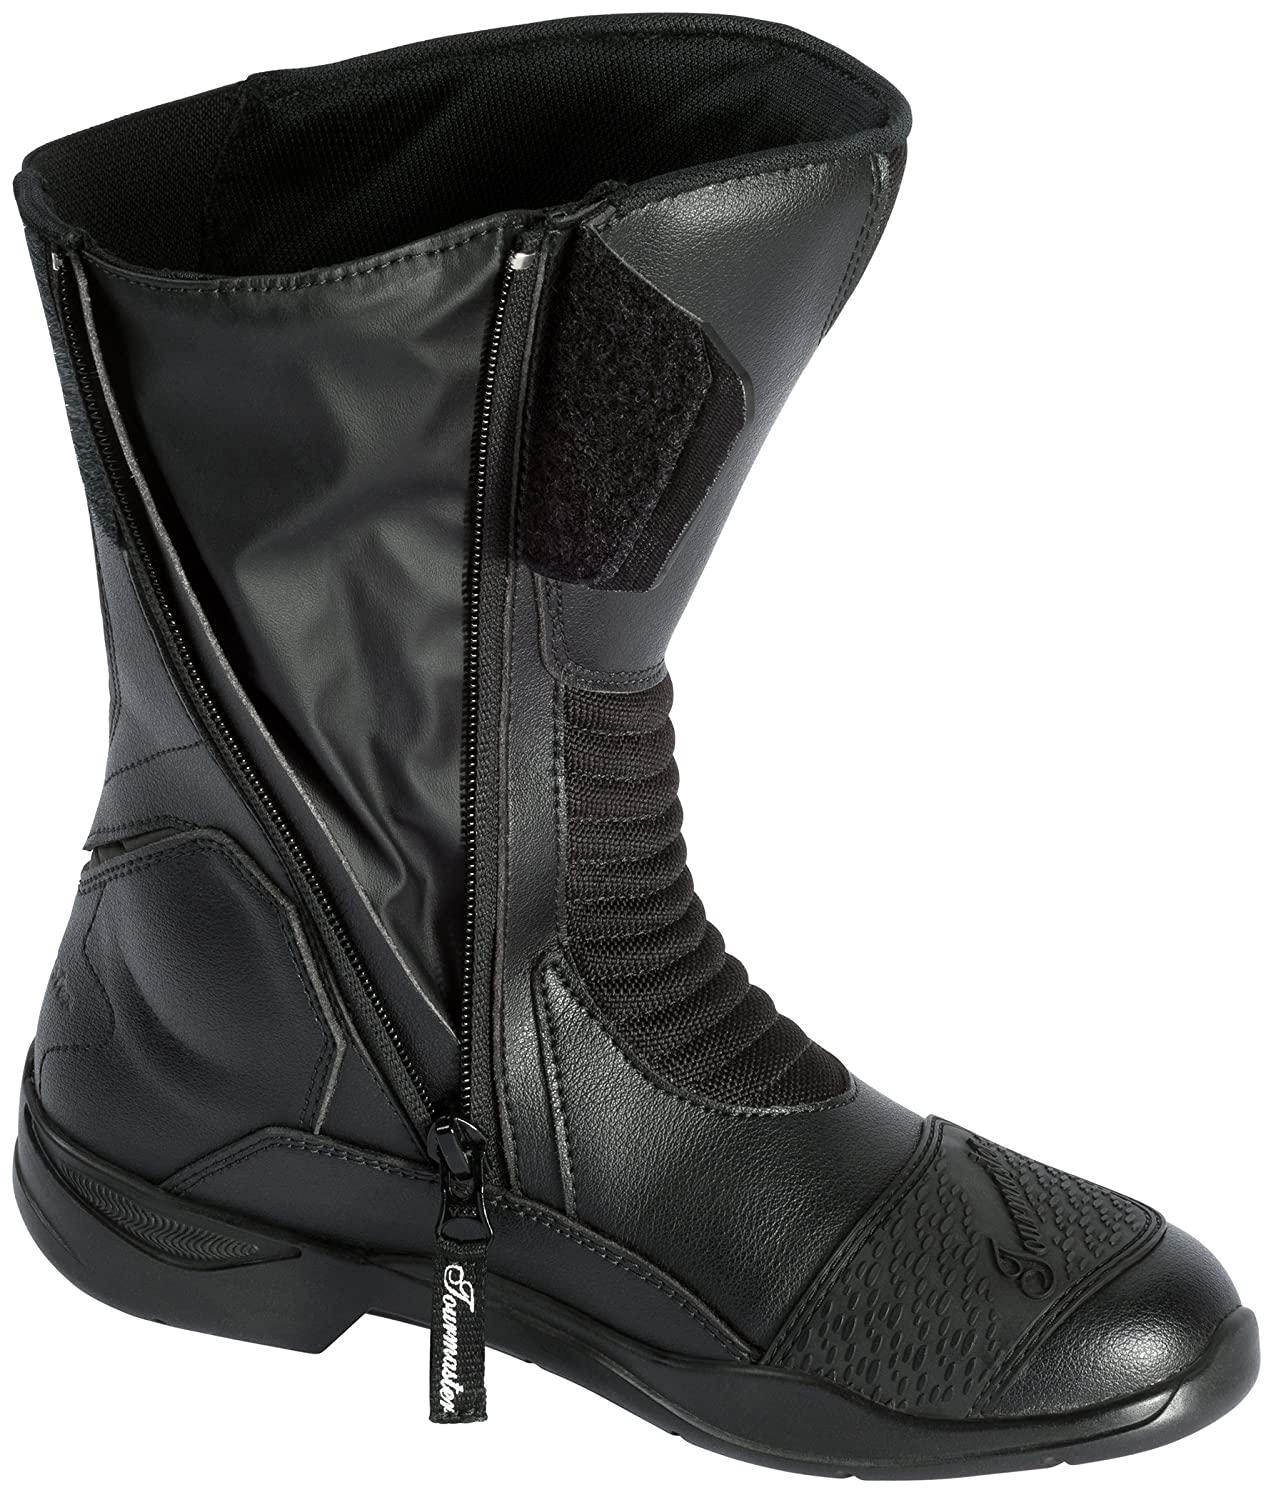 d589ec73e5dd1 Amazon.com  TourMaster Women s Trinity Touring Motorcycle Boots (Black